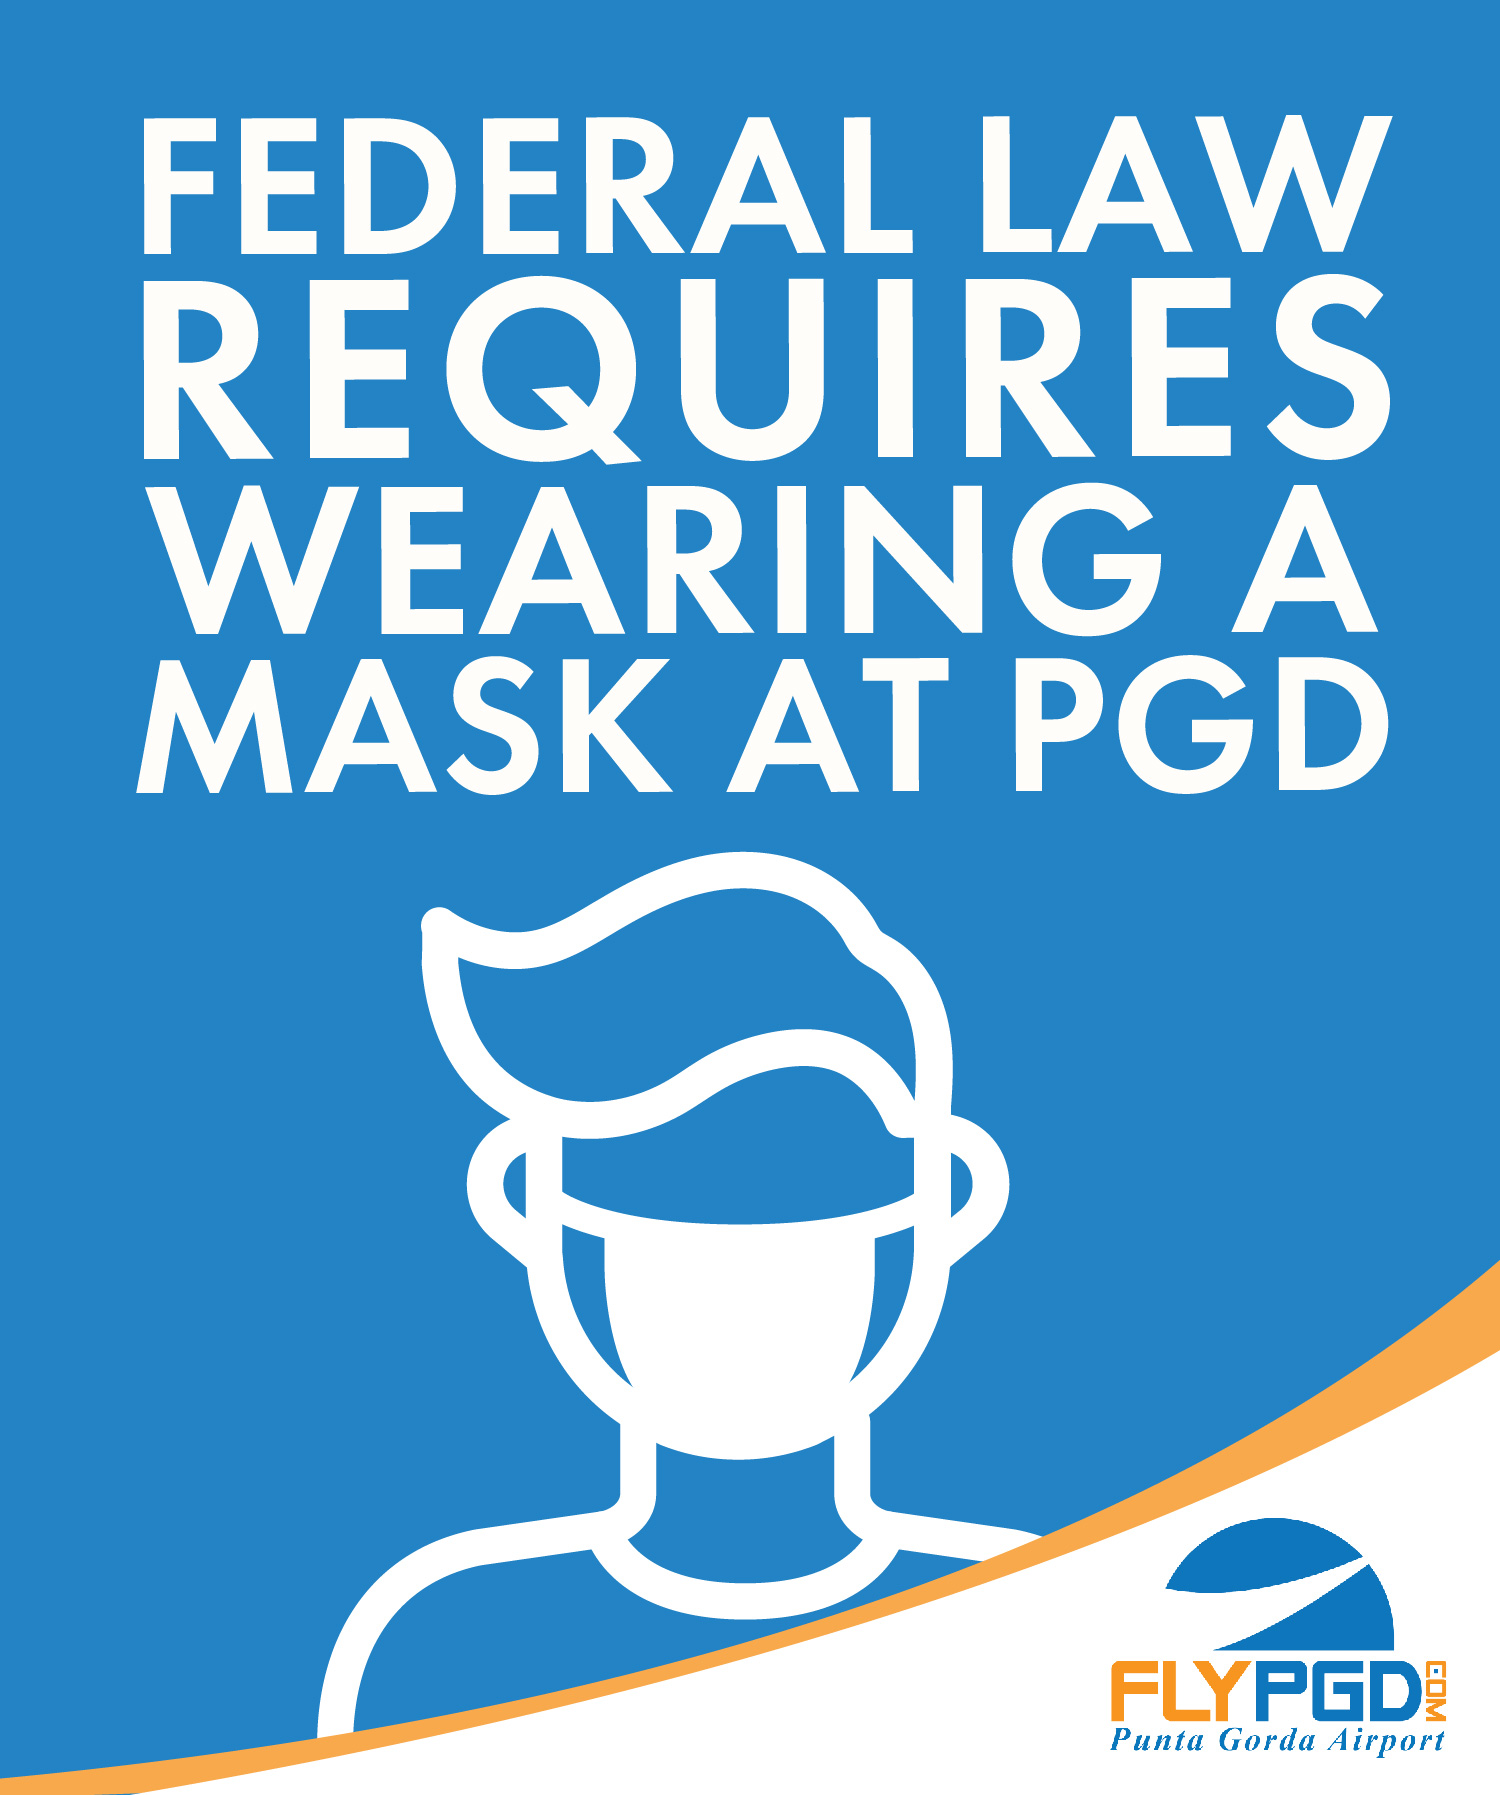 Federal Law requires a mask